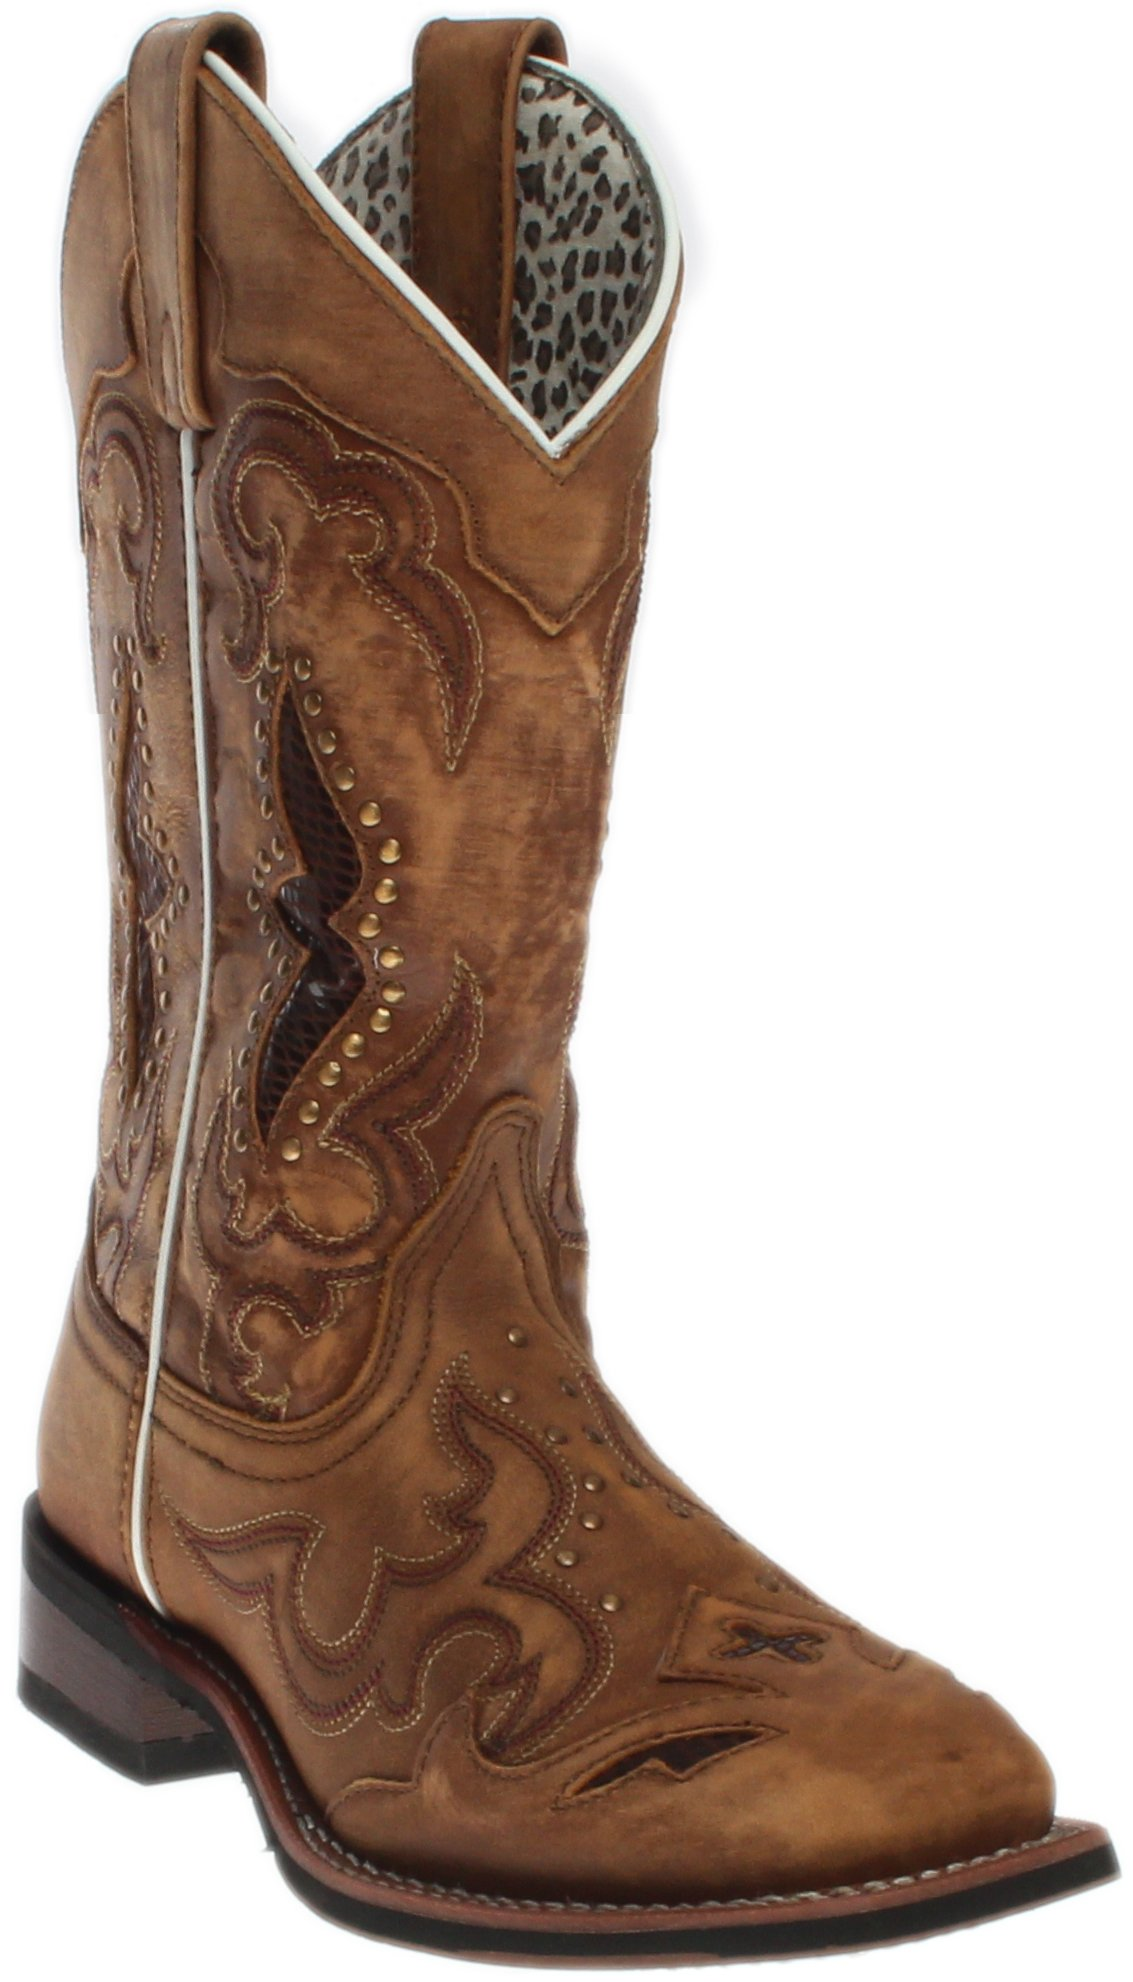 Laredo Women's Spellbound Western Boot Square Toe Tan 9 M